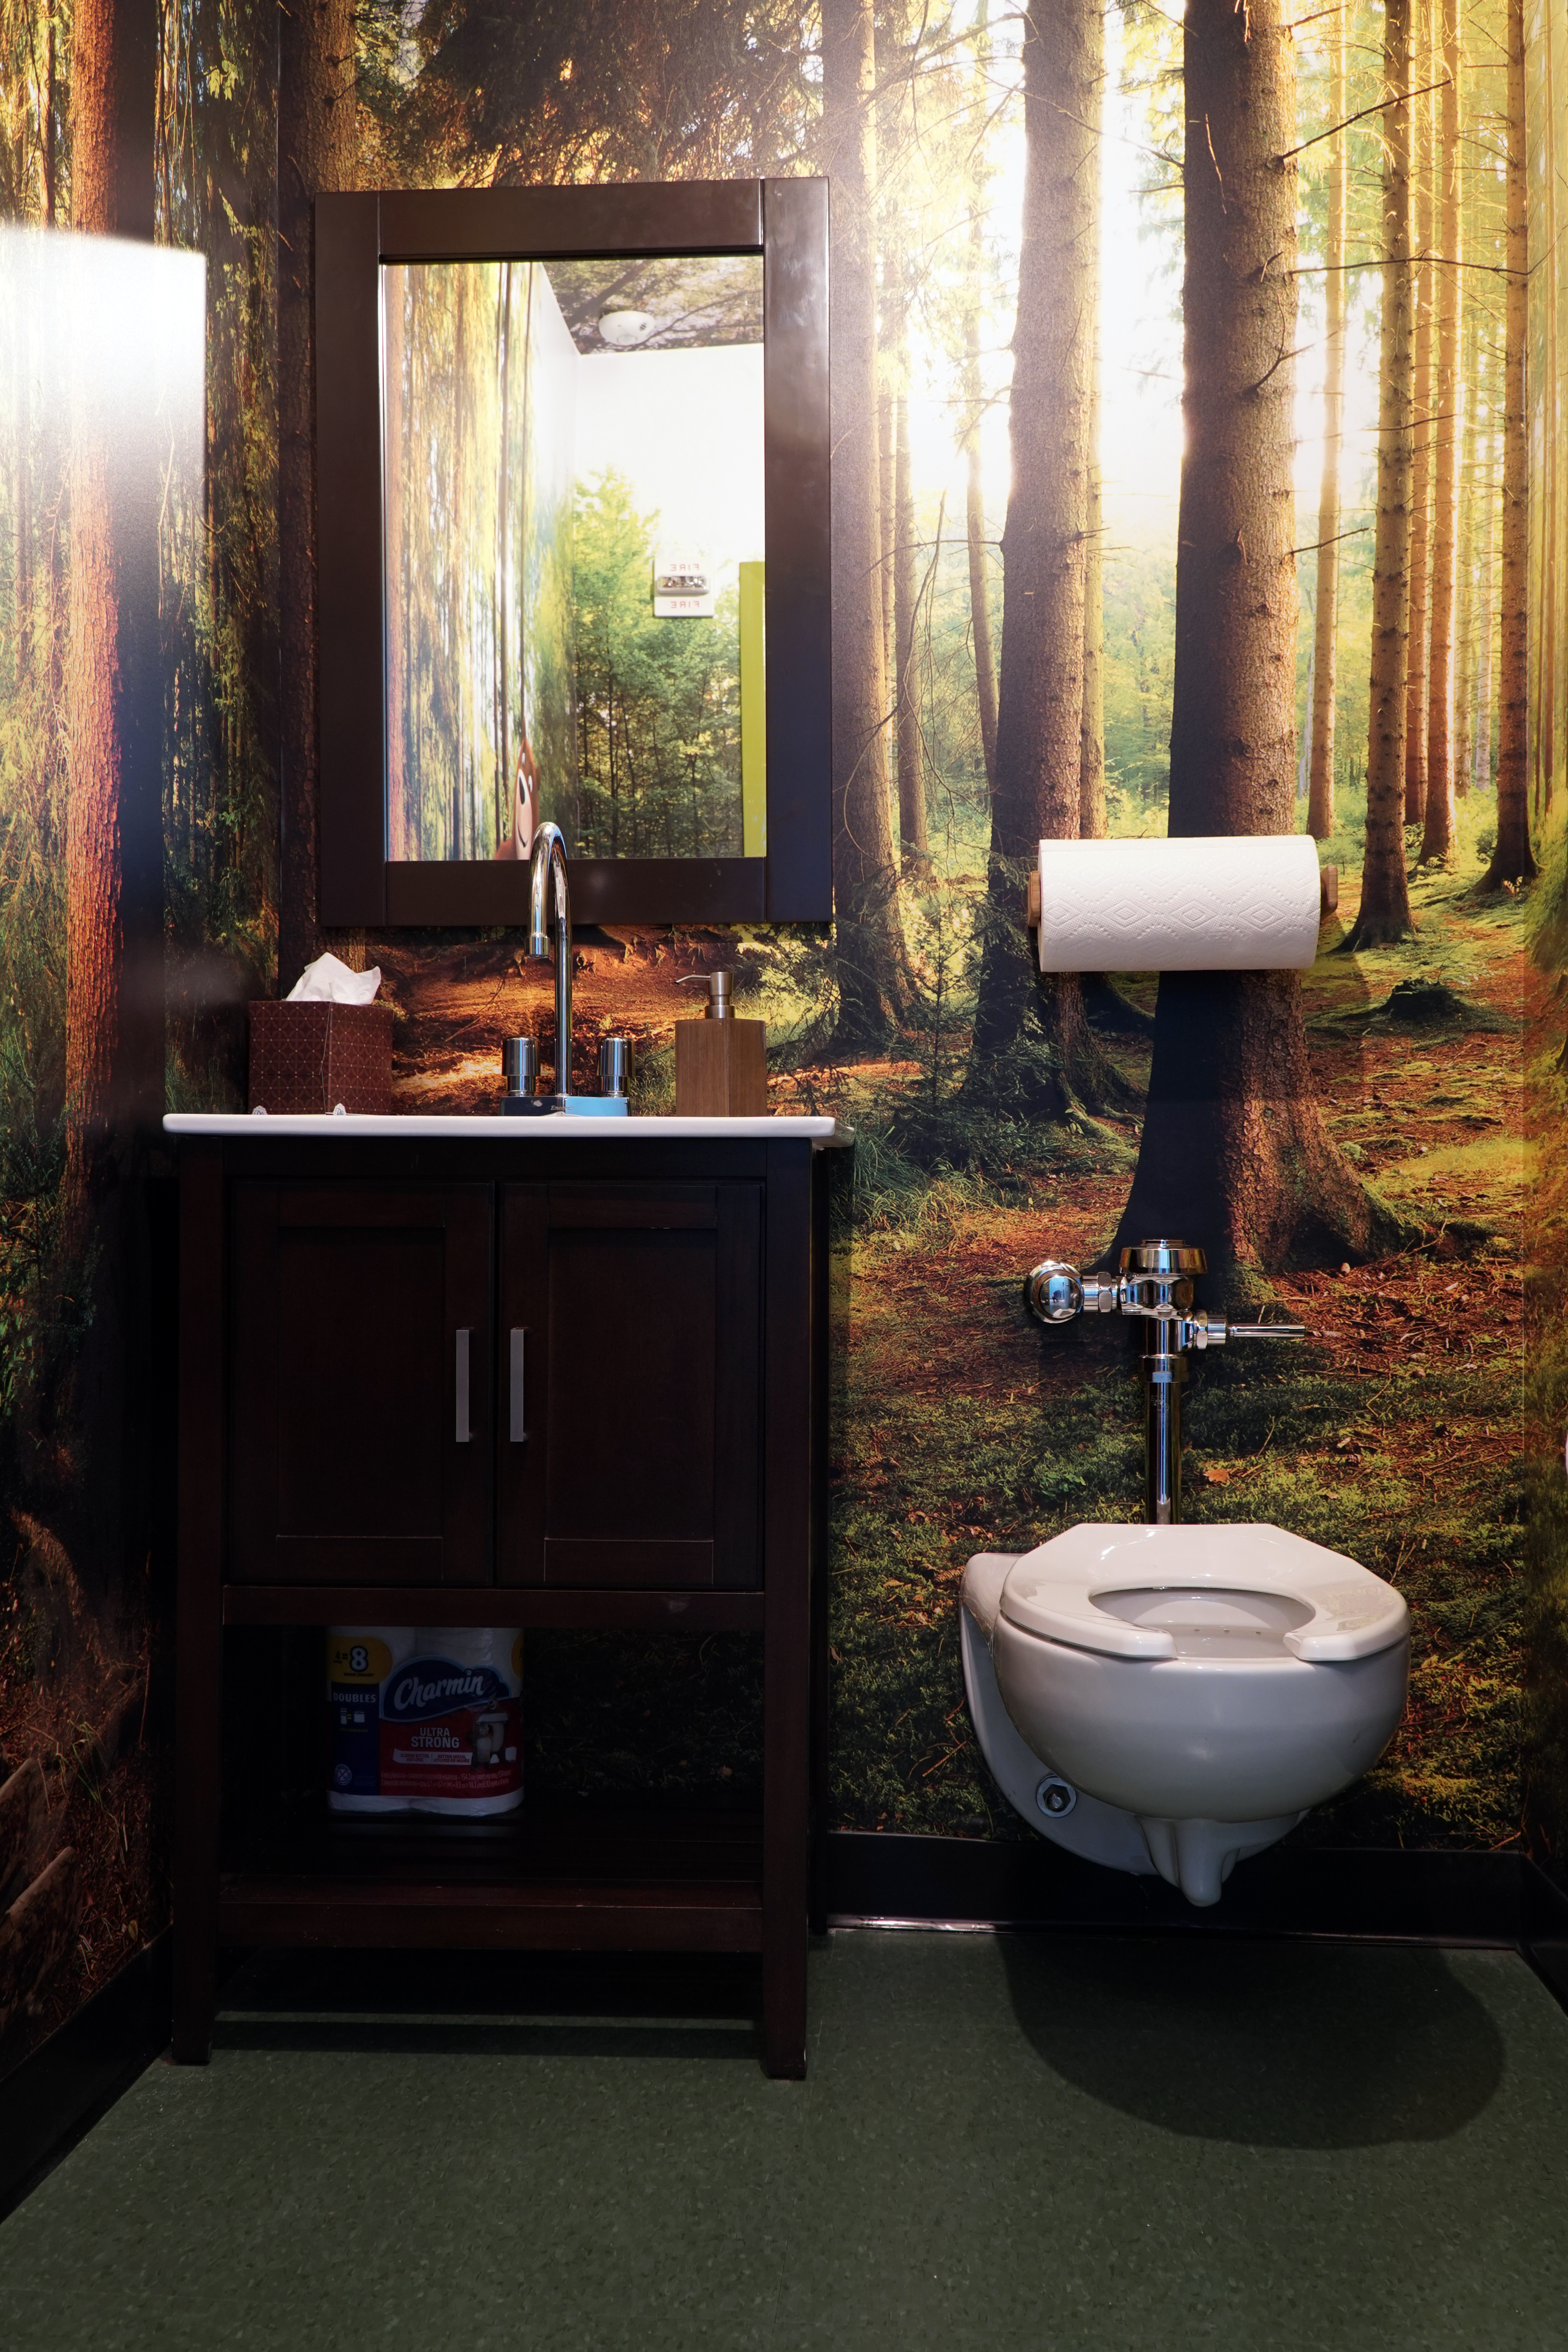 Terrific Charmin Restrooms Opens In Times Square This Holiday Season Forskolin Free Trial Chair Design Images Forskolin Free Trialorg